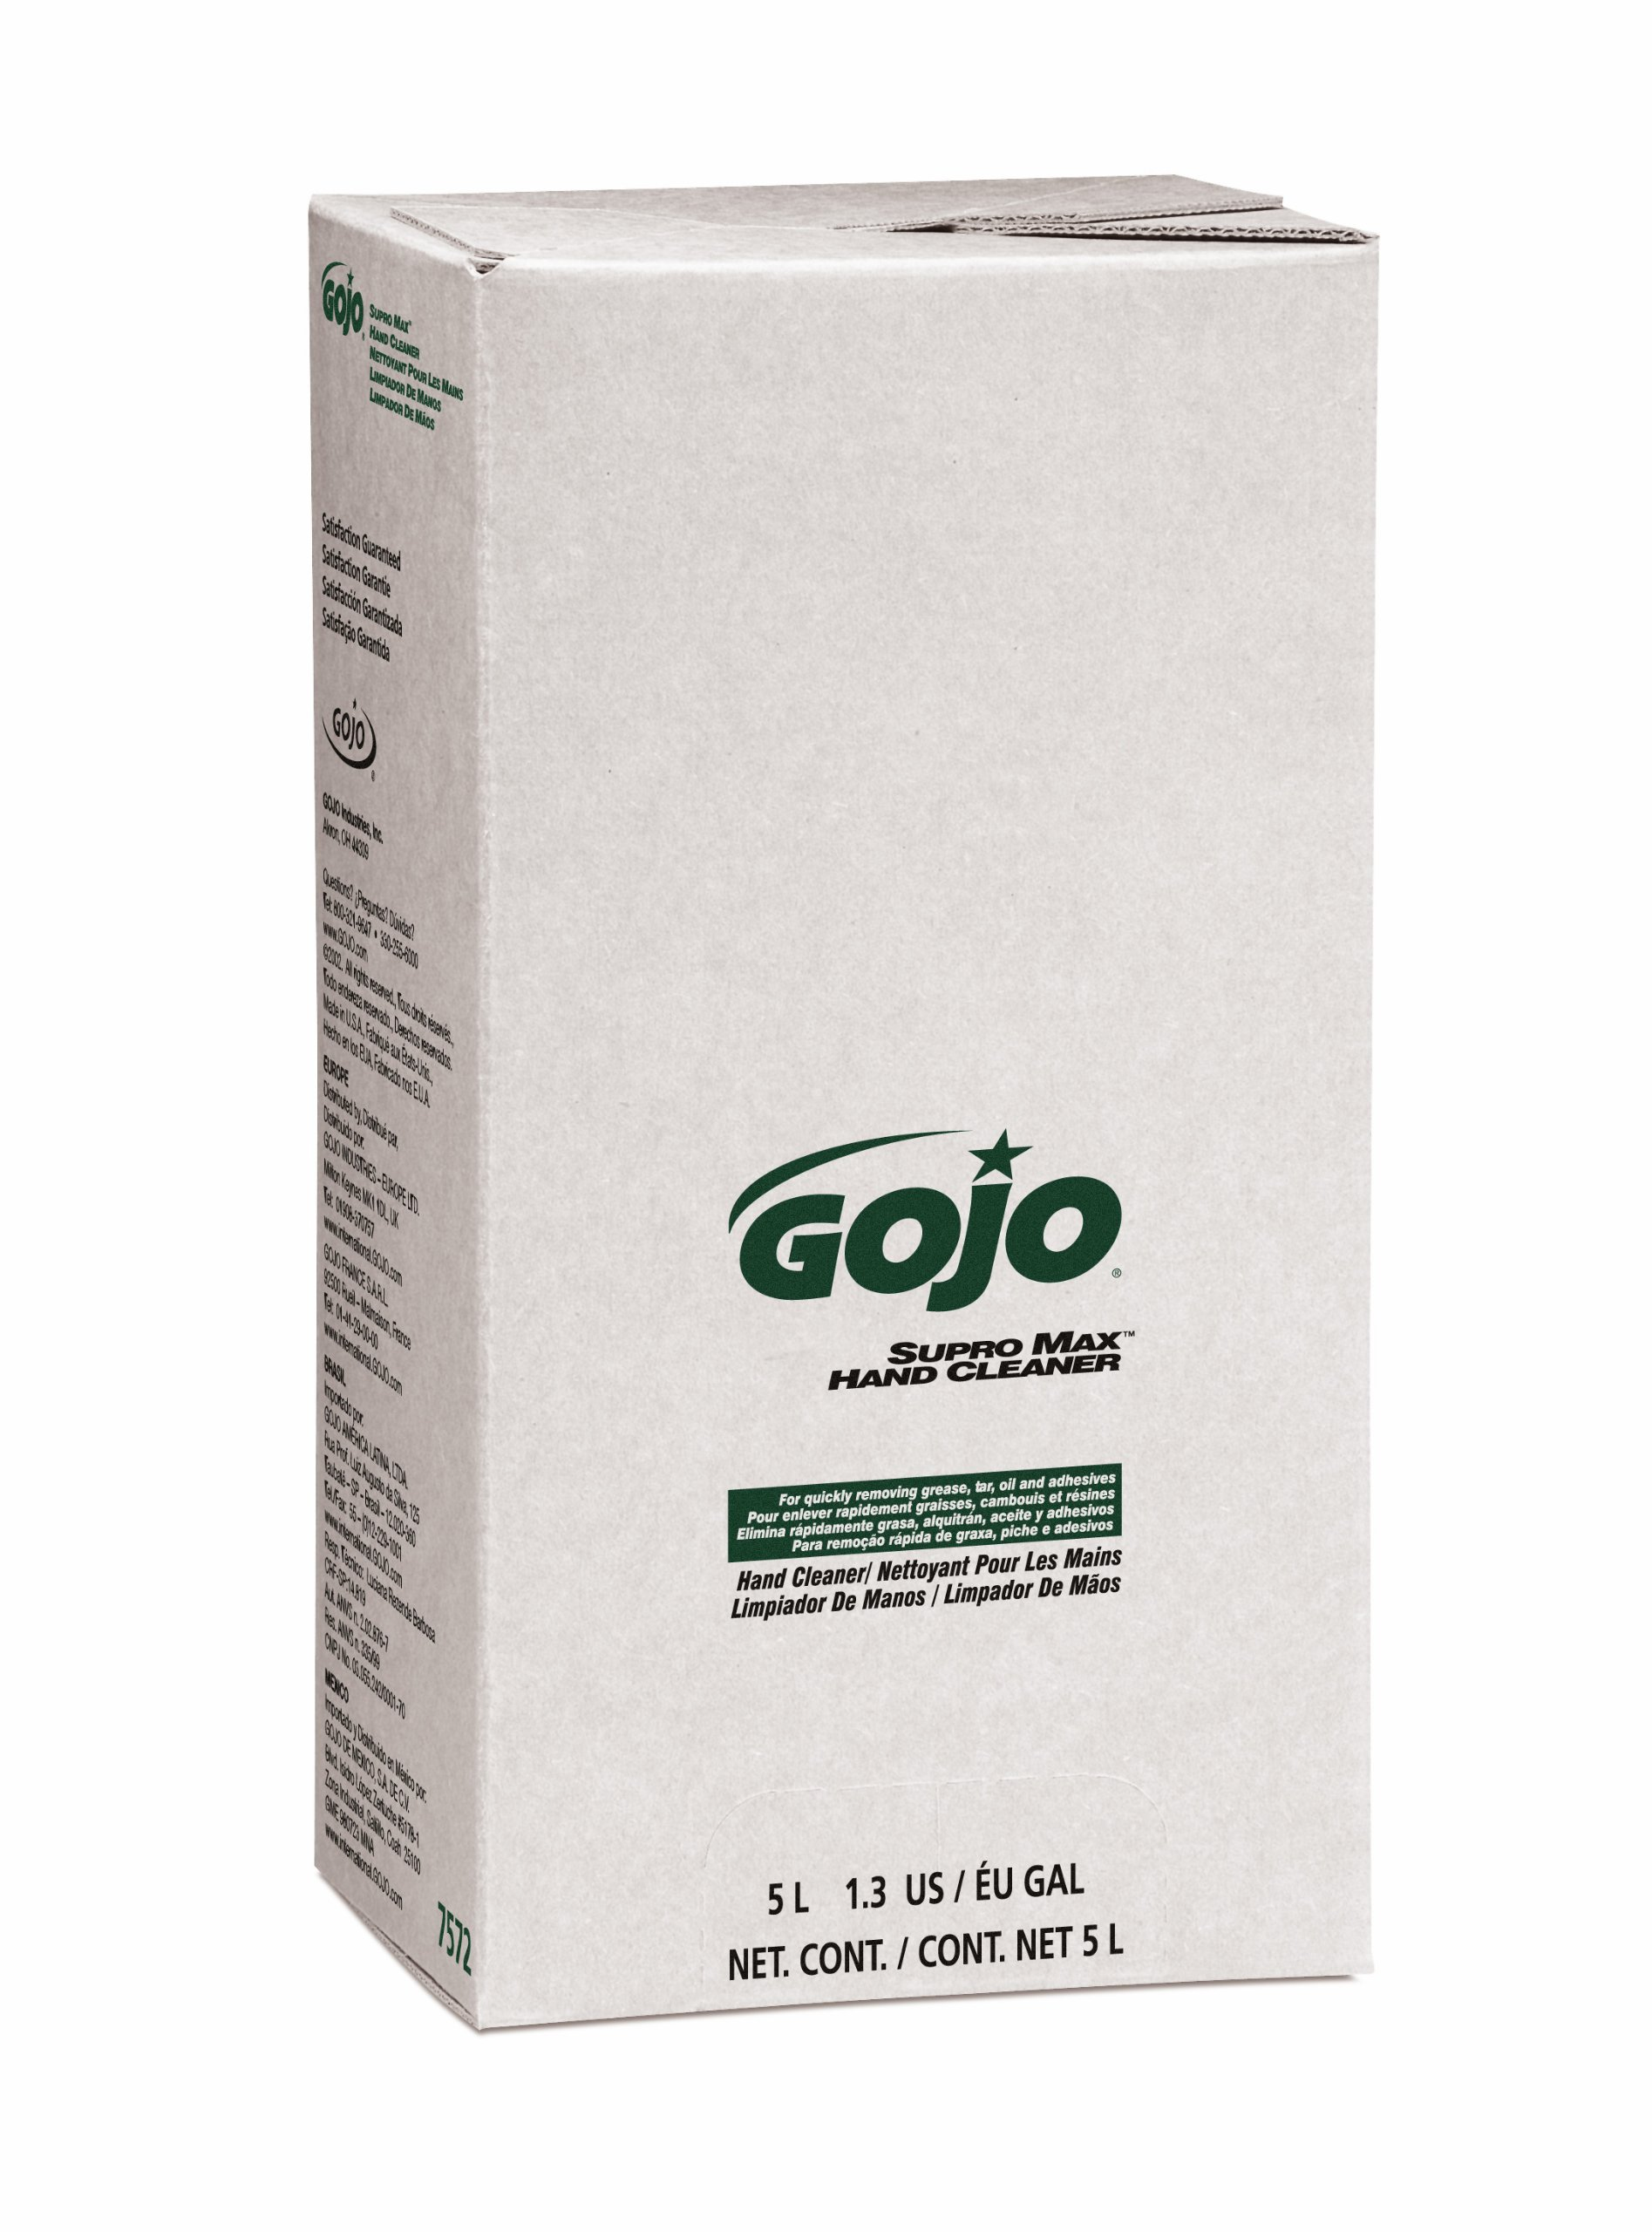 GOJO PRO TDX SUPRO MAX Hand Cleaner, 5000 mL Heavy-Duty Hand Cleaner Refill for GOJO PRO TDX Dispenser (Pack of 2) - 7572-02 by Gojo (Image #2)